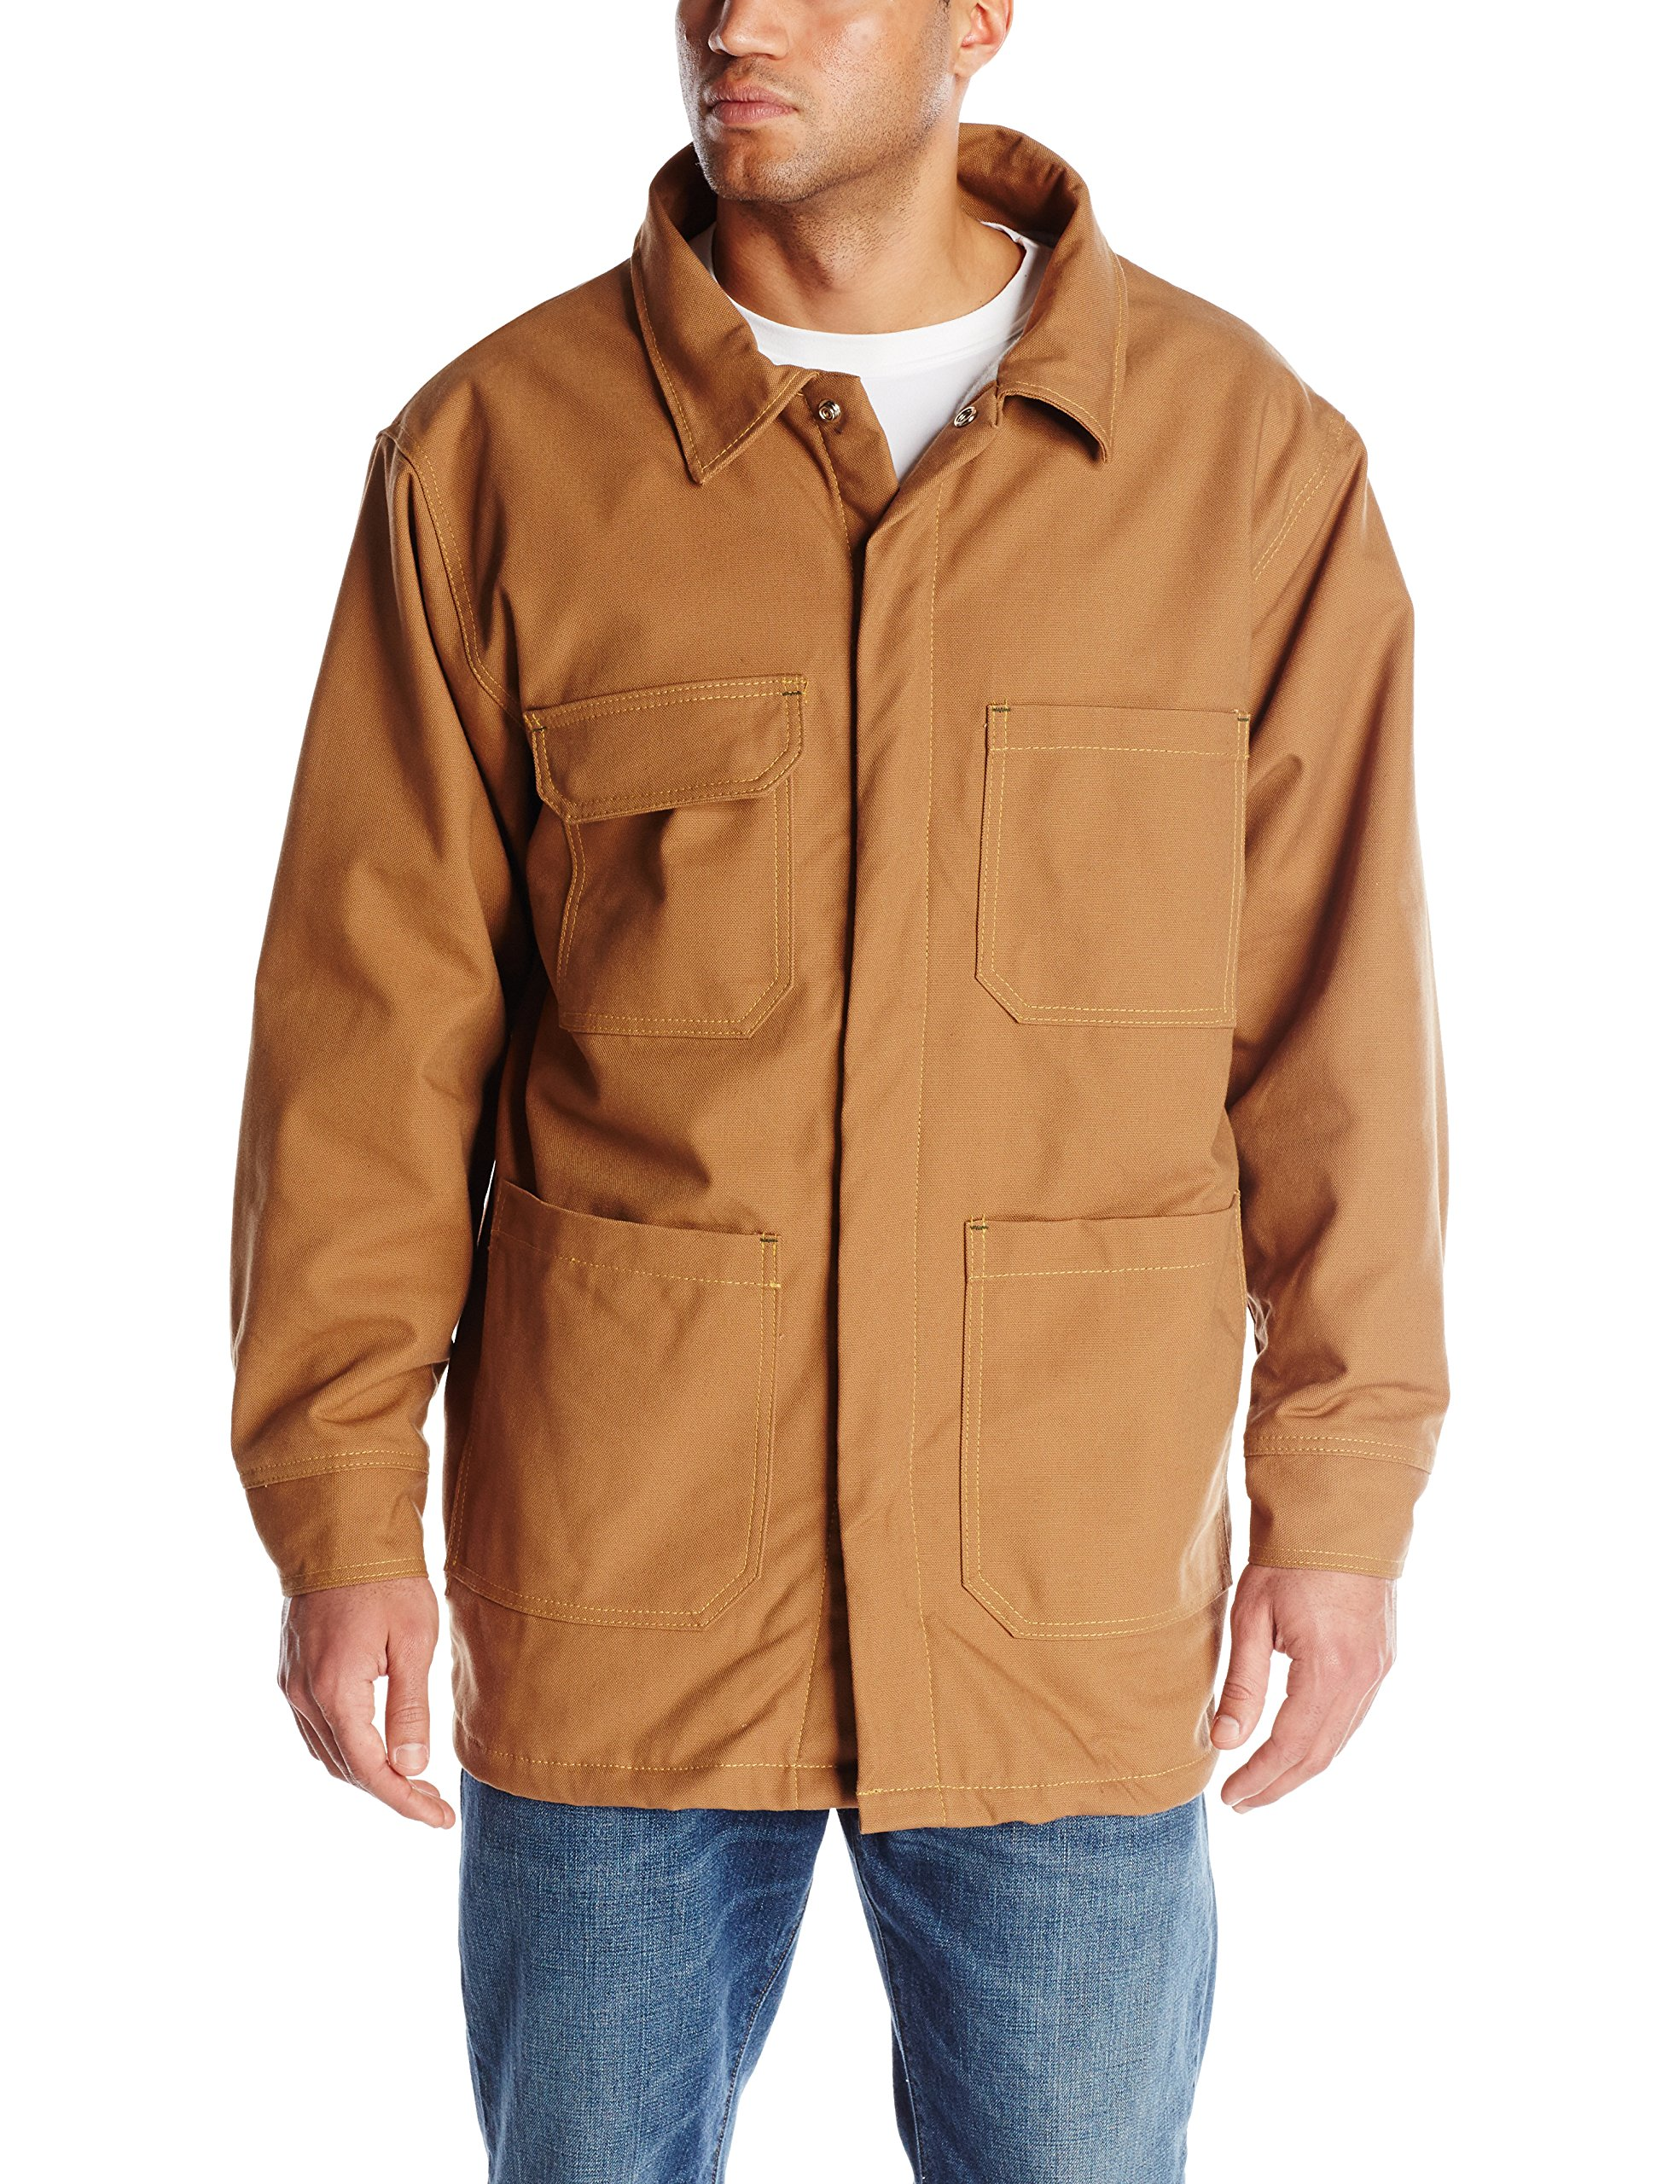 Bulwark Flame Resistant 11 oz Cotton/Nylon Excel FR ComforTouch Regular Brown Duck Lineman's Coat with Self Fabric Lay-Flat Collar, Brown Duck, Large